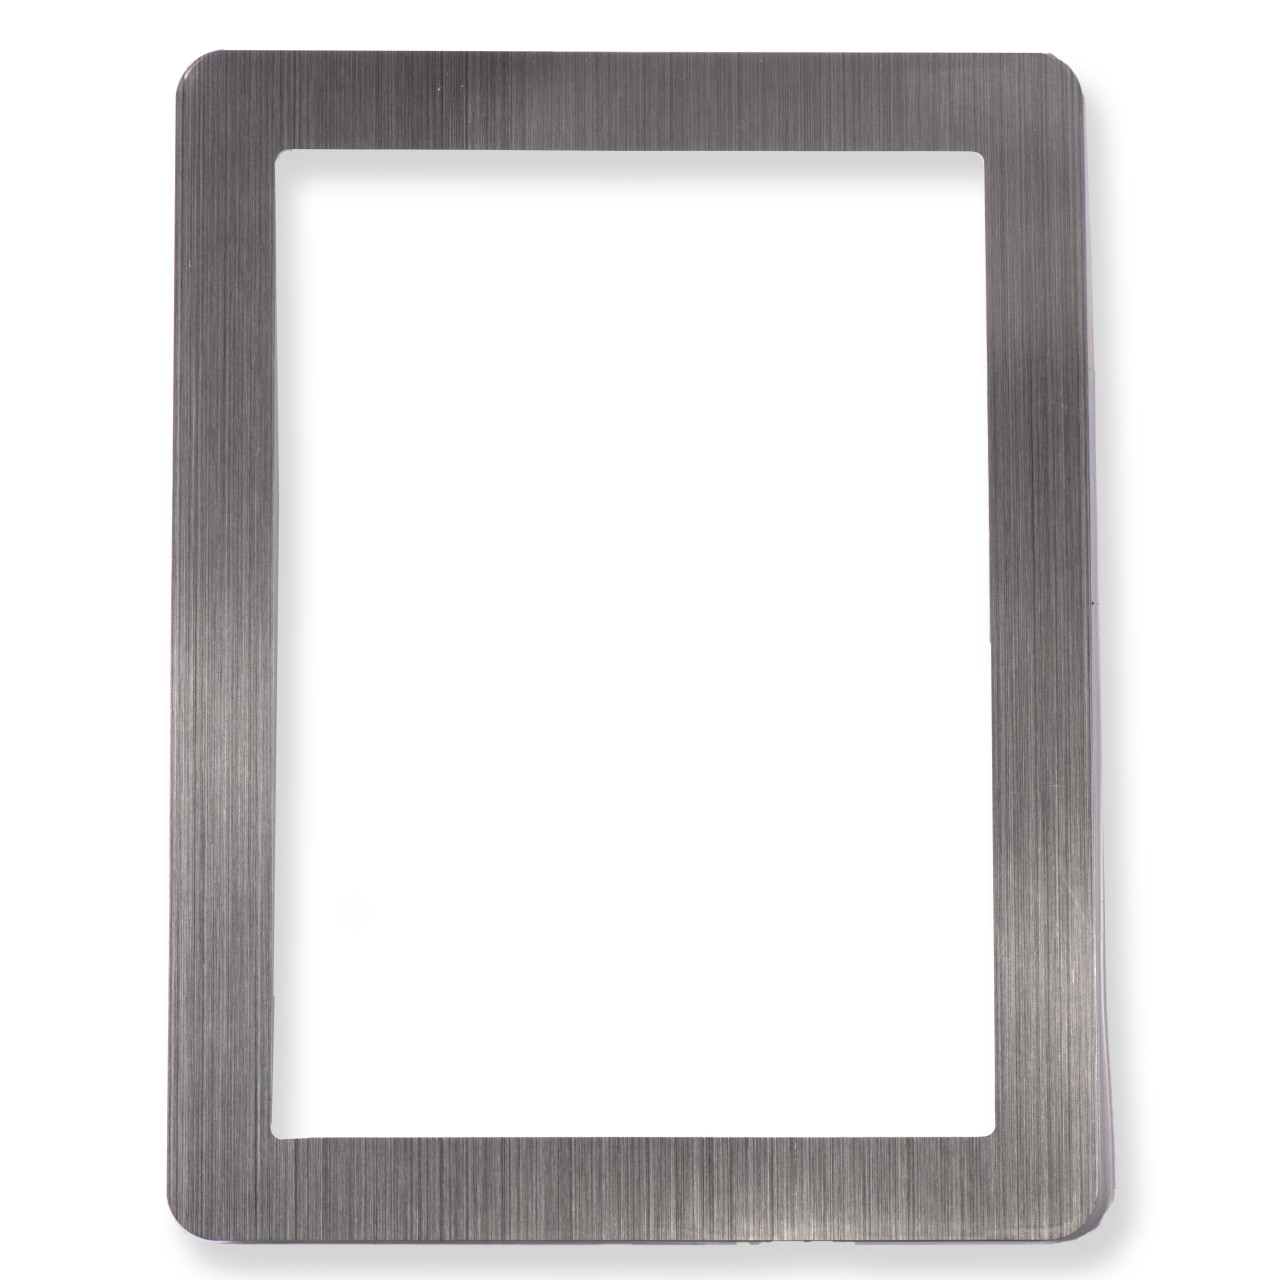 5 in. x 7 in. Stick it Frame - Reuse and Reposition 3/Pack